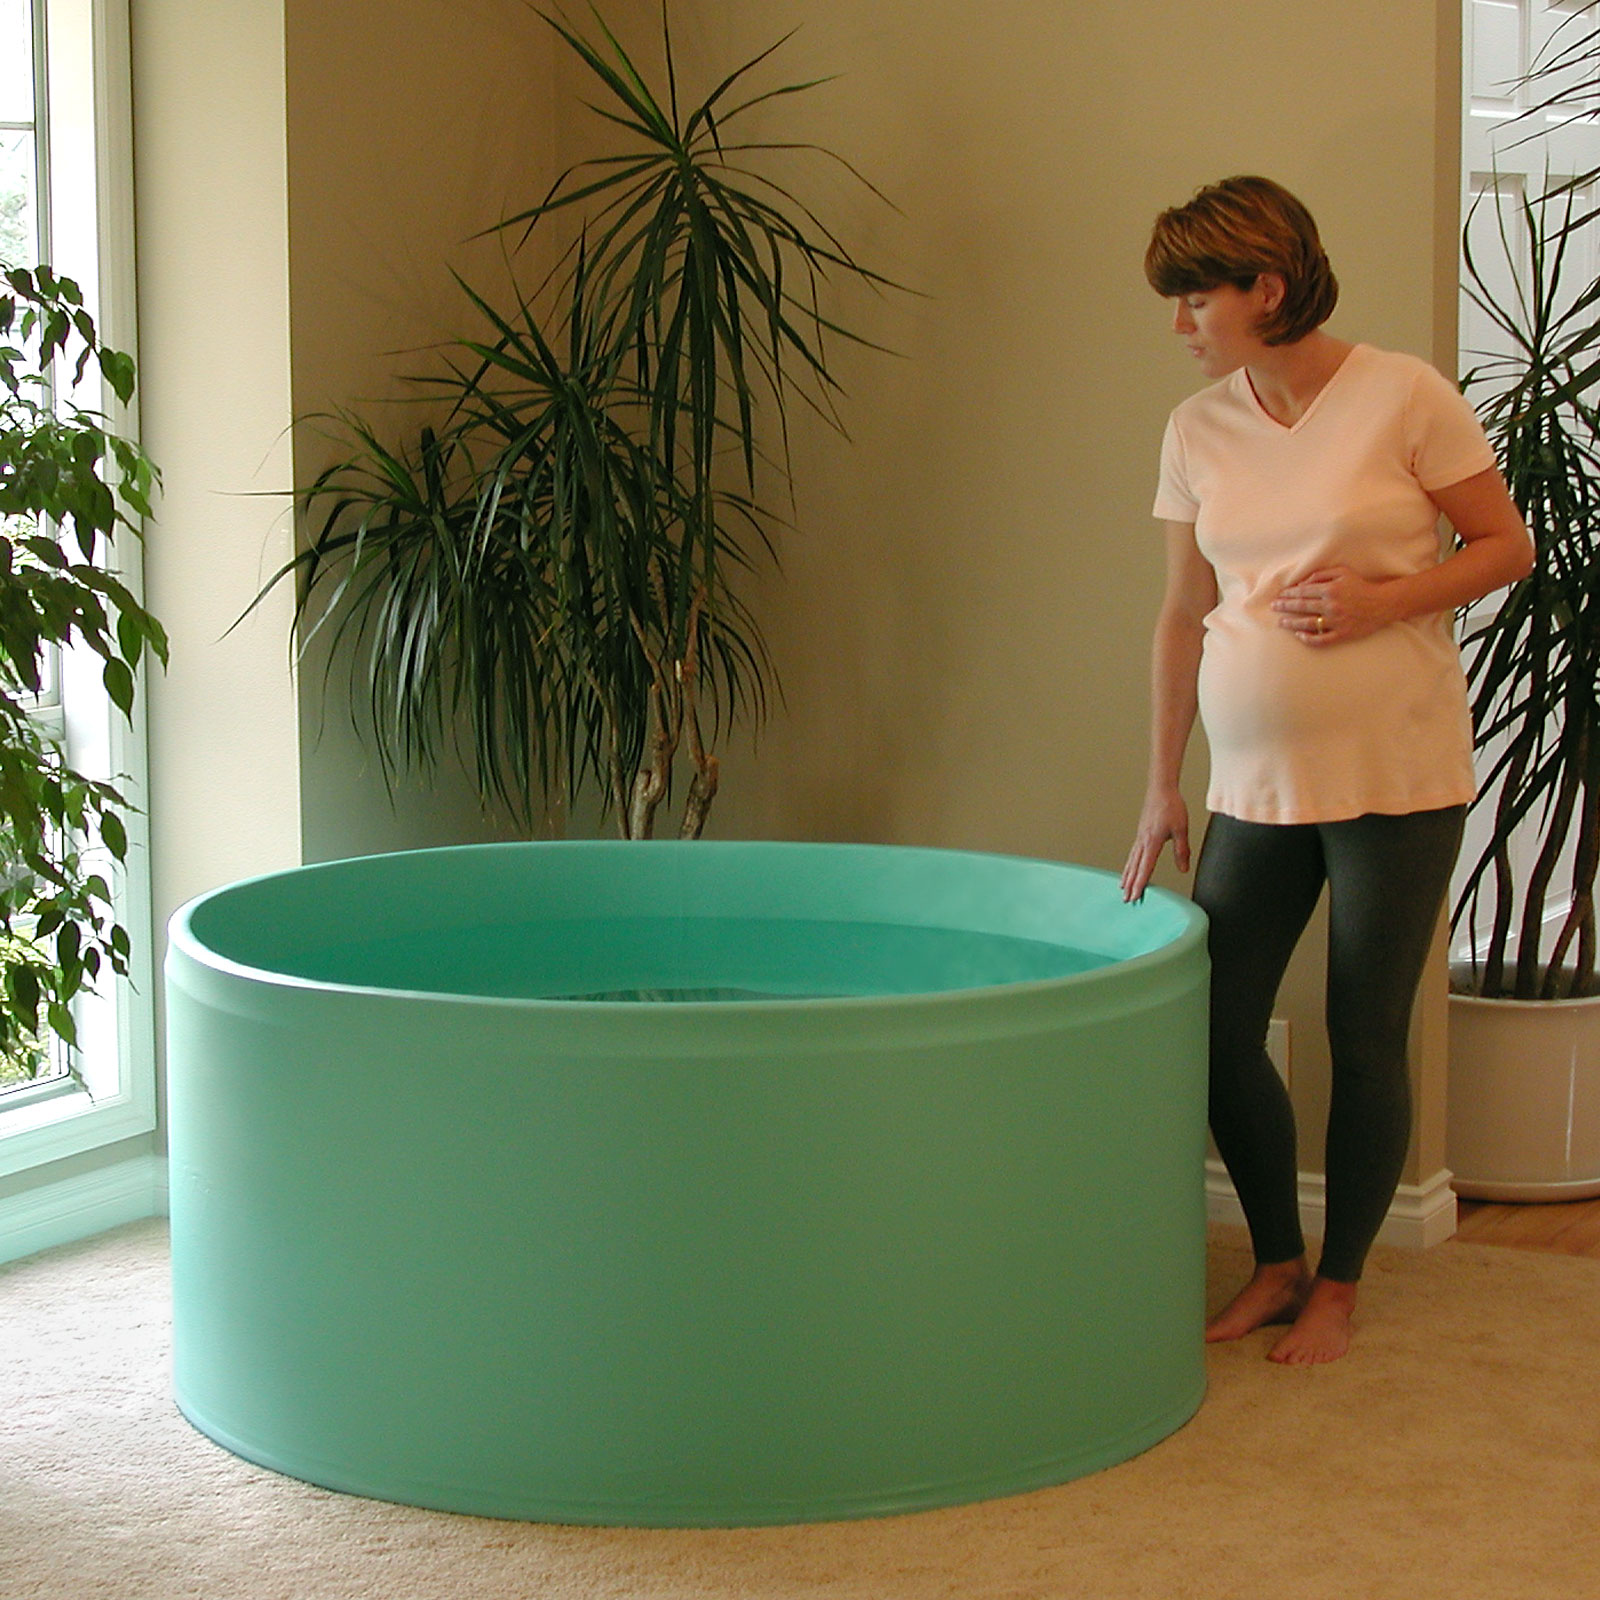 AquaDoula Portable Birth Pool